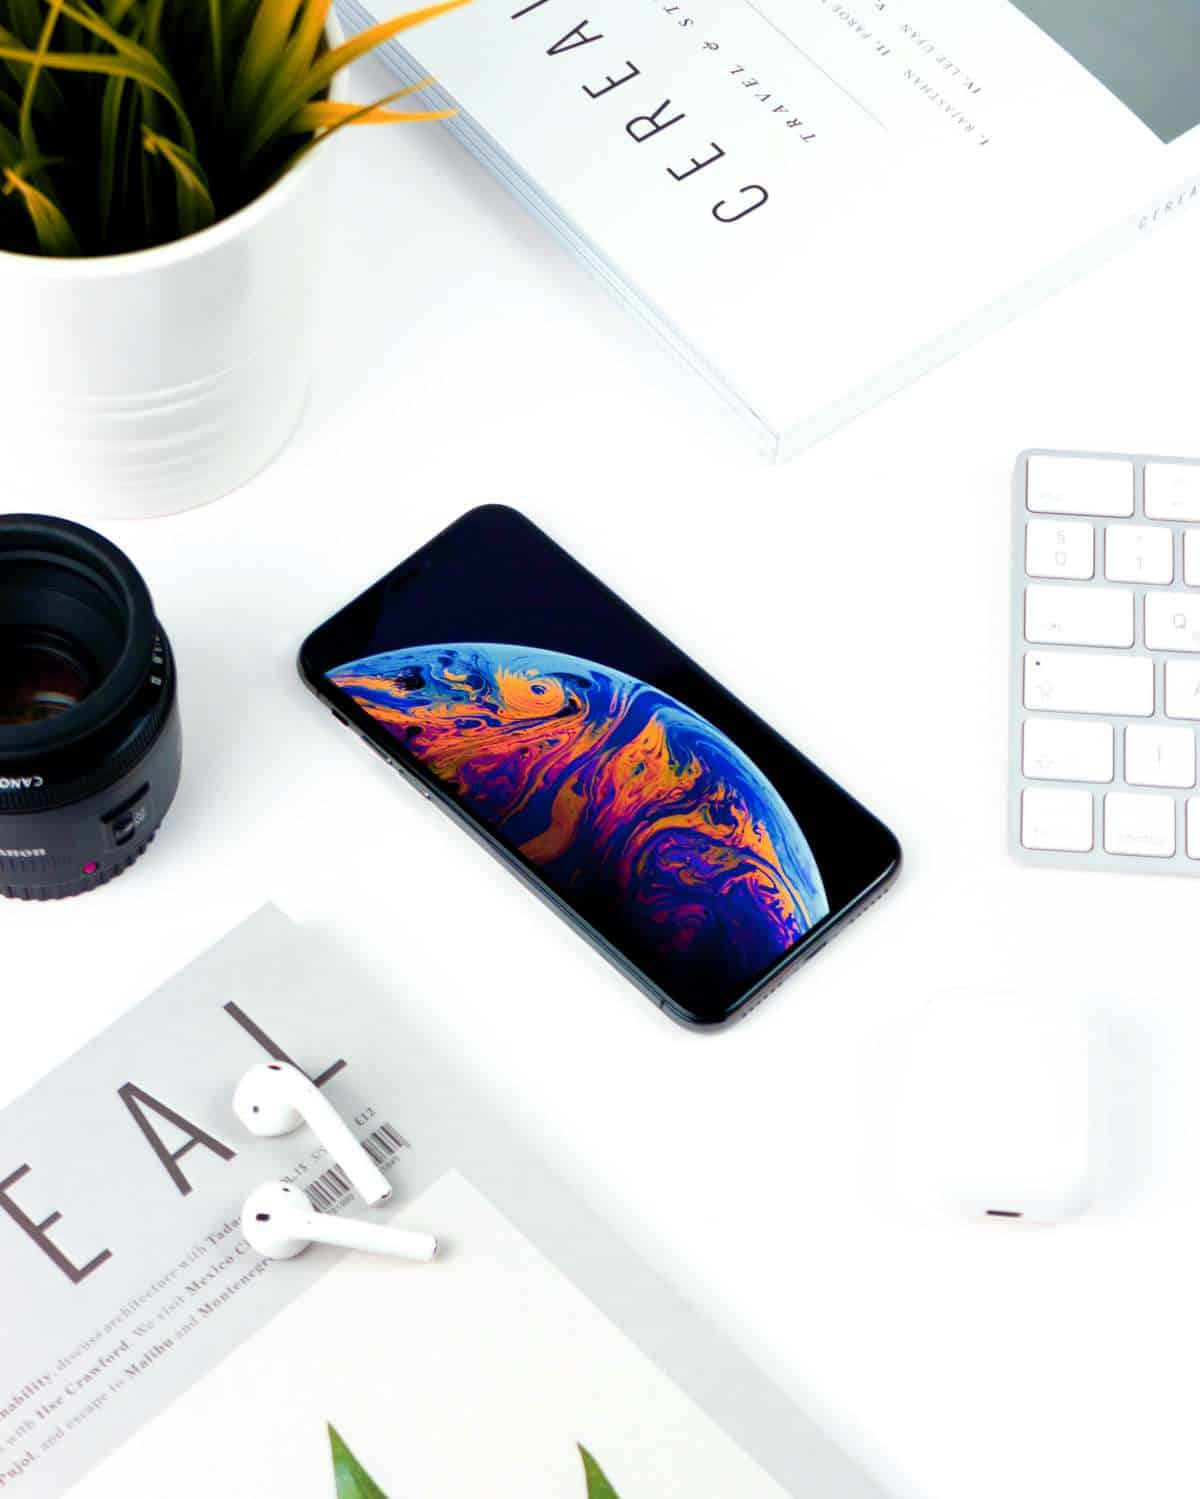 iPhone XS and airpods | iPhone XR, XS, and XS Max | Difference Between The Latest iPhone Models